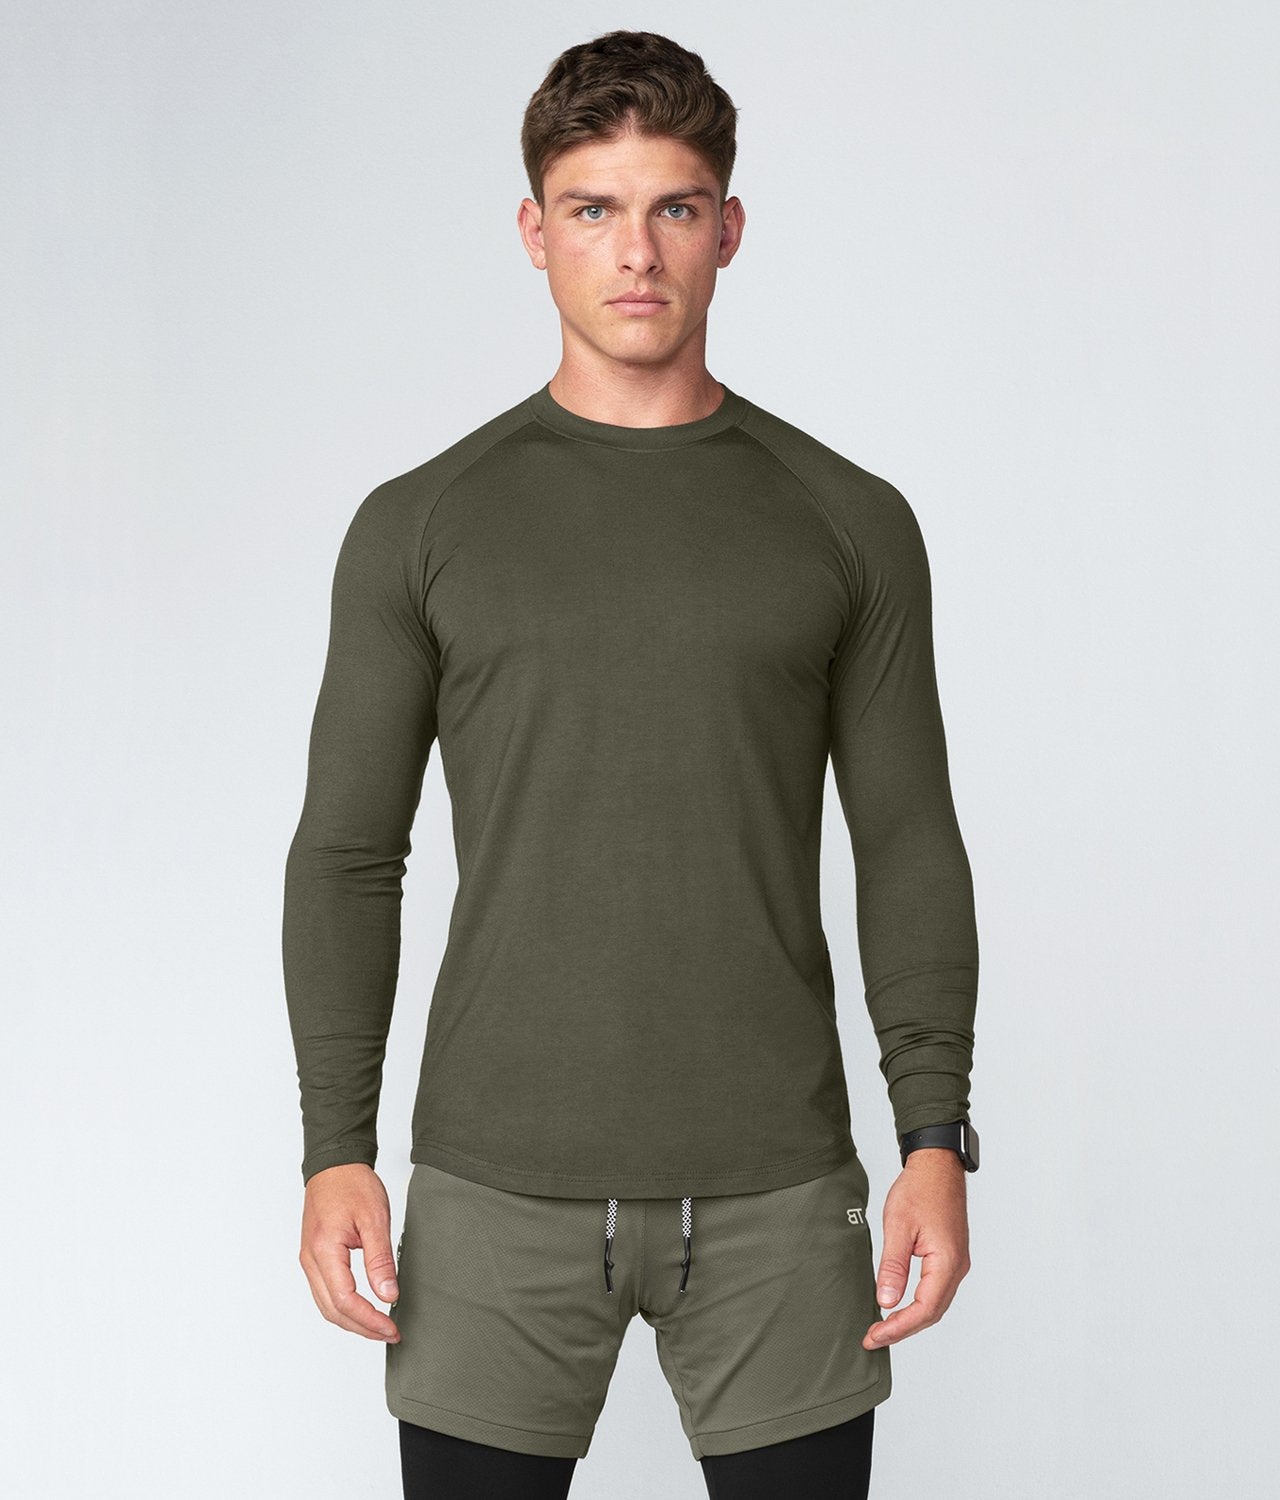 Born Tough United Kingdom Core Fit Extremely Durable Army Green Long Sleeve Gym Workout Shirt For Men